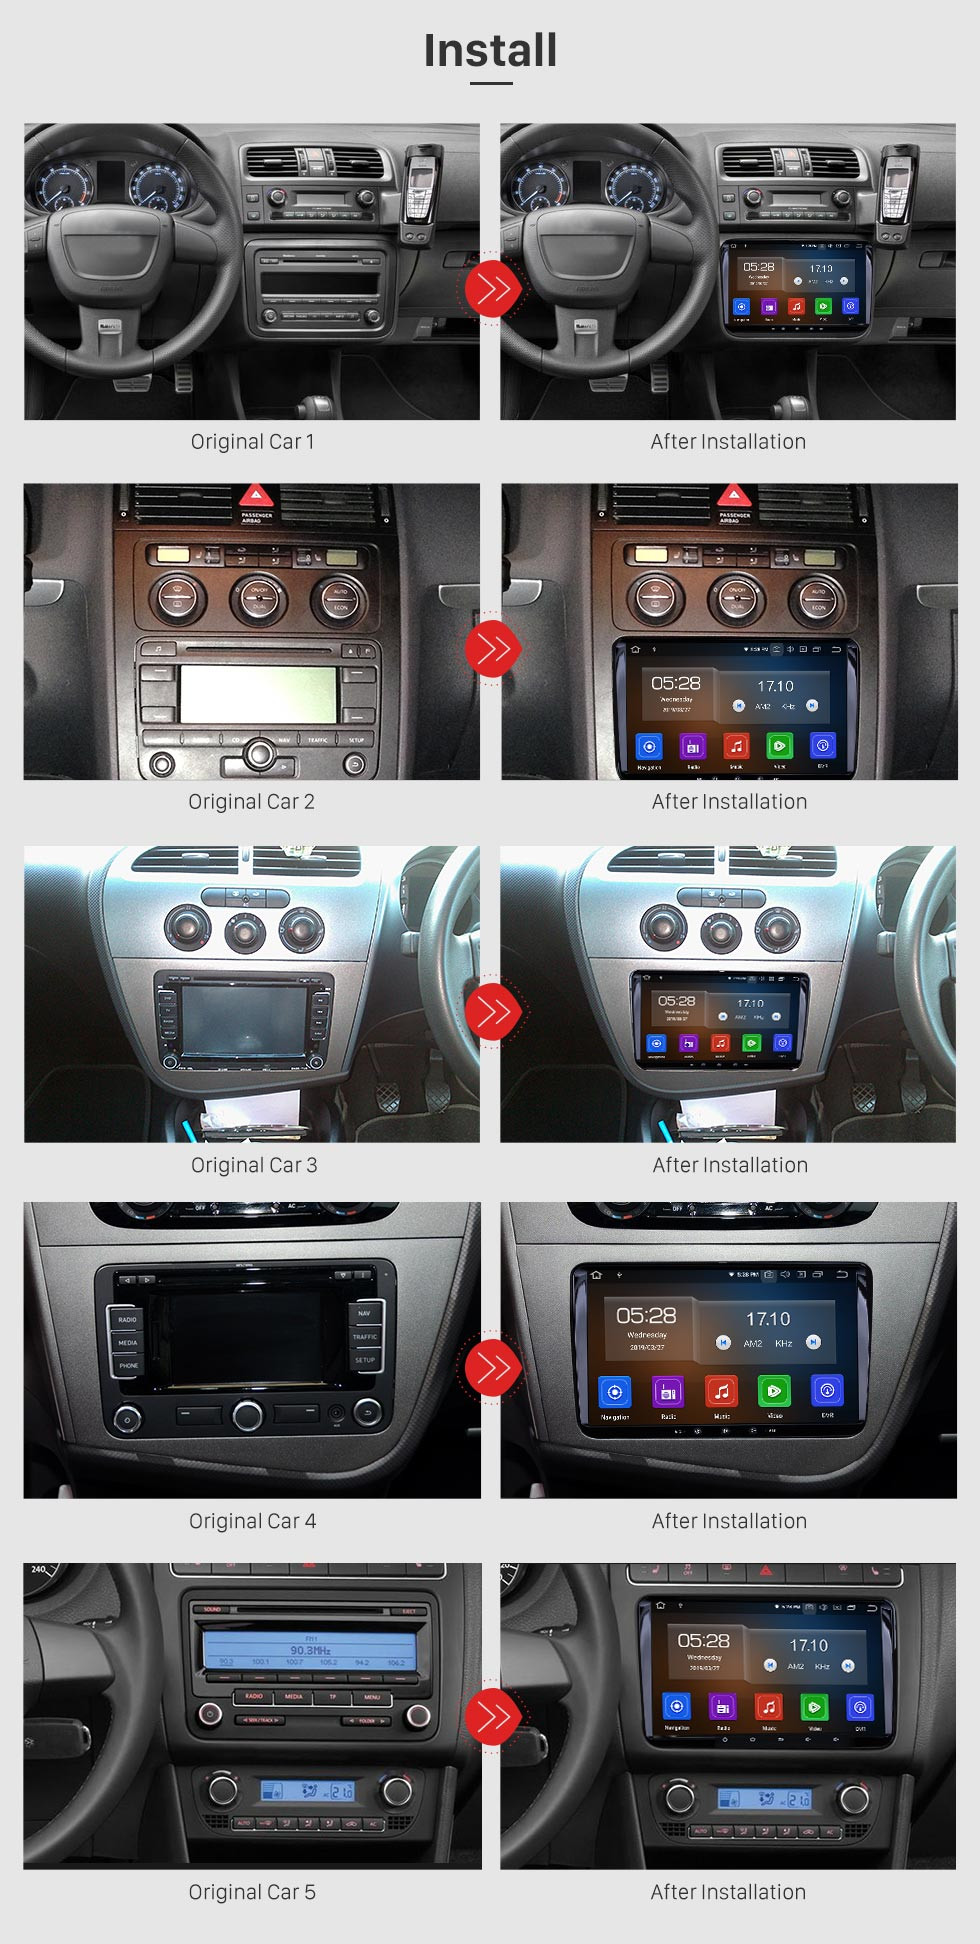 Seicane 9 inch Android 10.0 In Dash Bluetooth GPS System for 2004-2011 VW Volkswagen Sagitar PASSAT with 3G WiFi Radio RDS Mirror Link OBD2 Rearview Camera AUX